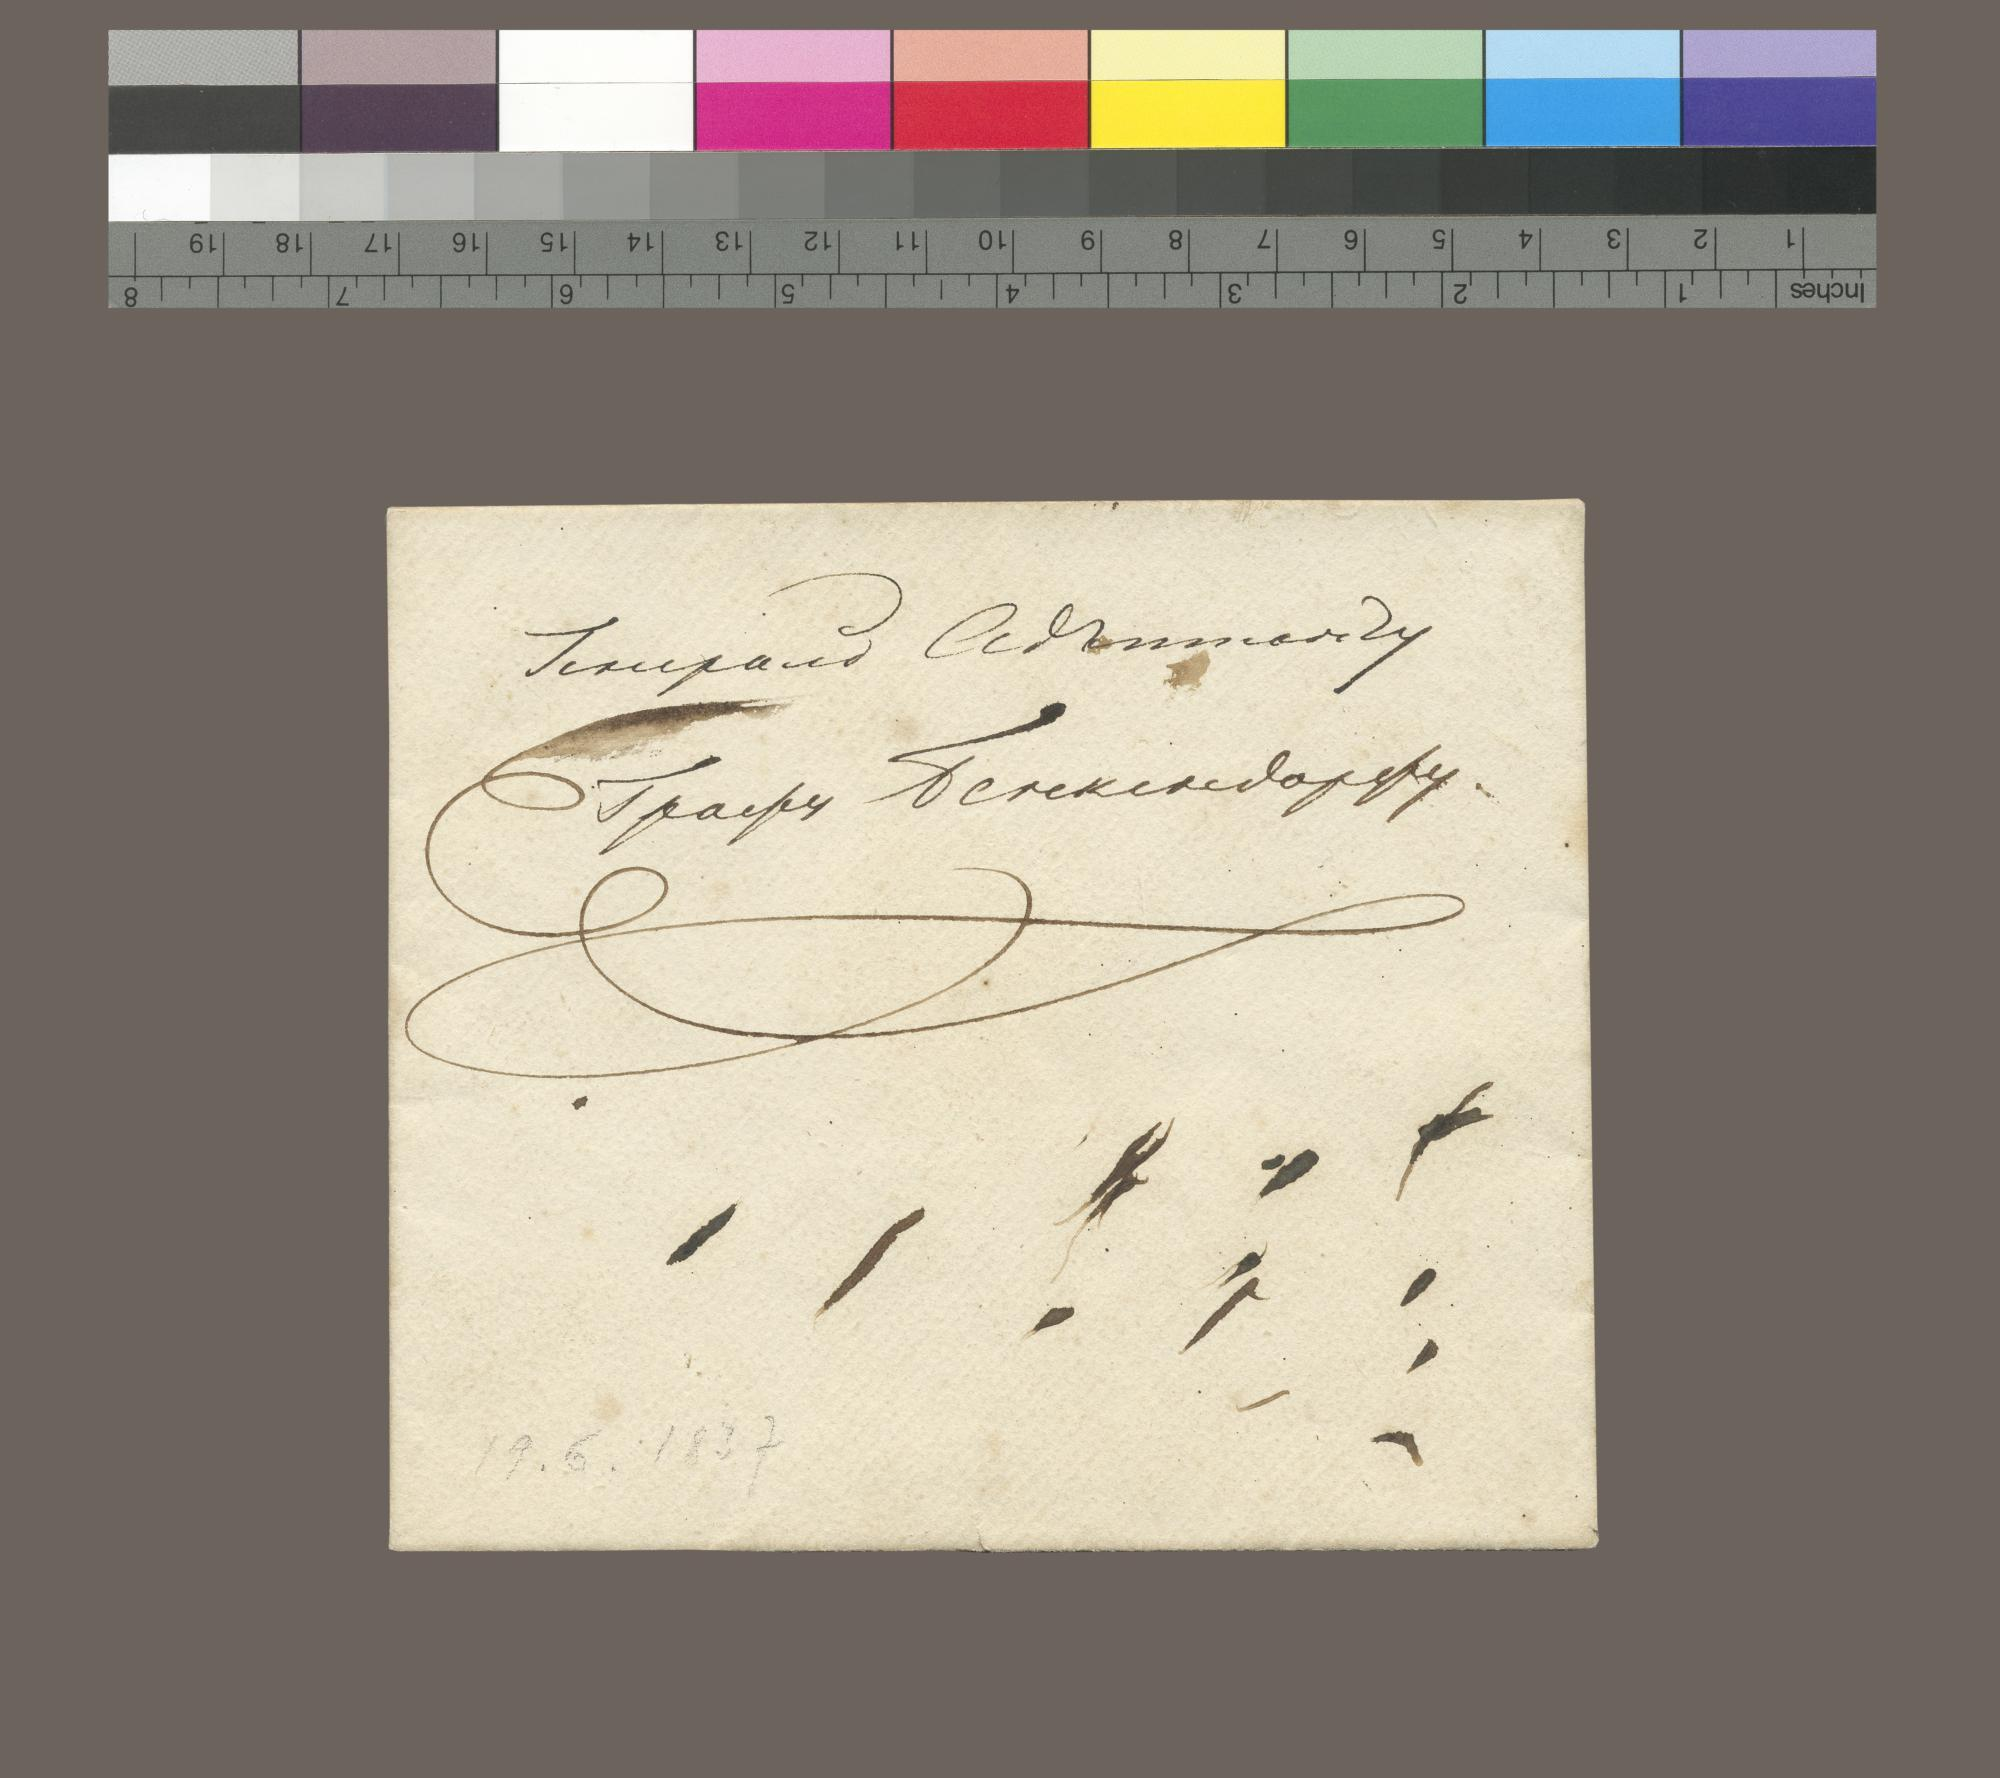 Autograph letter, signed, to Count Alexander Benckendorff (with envelope)